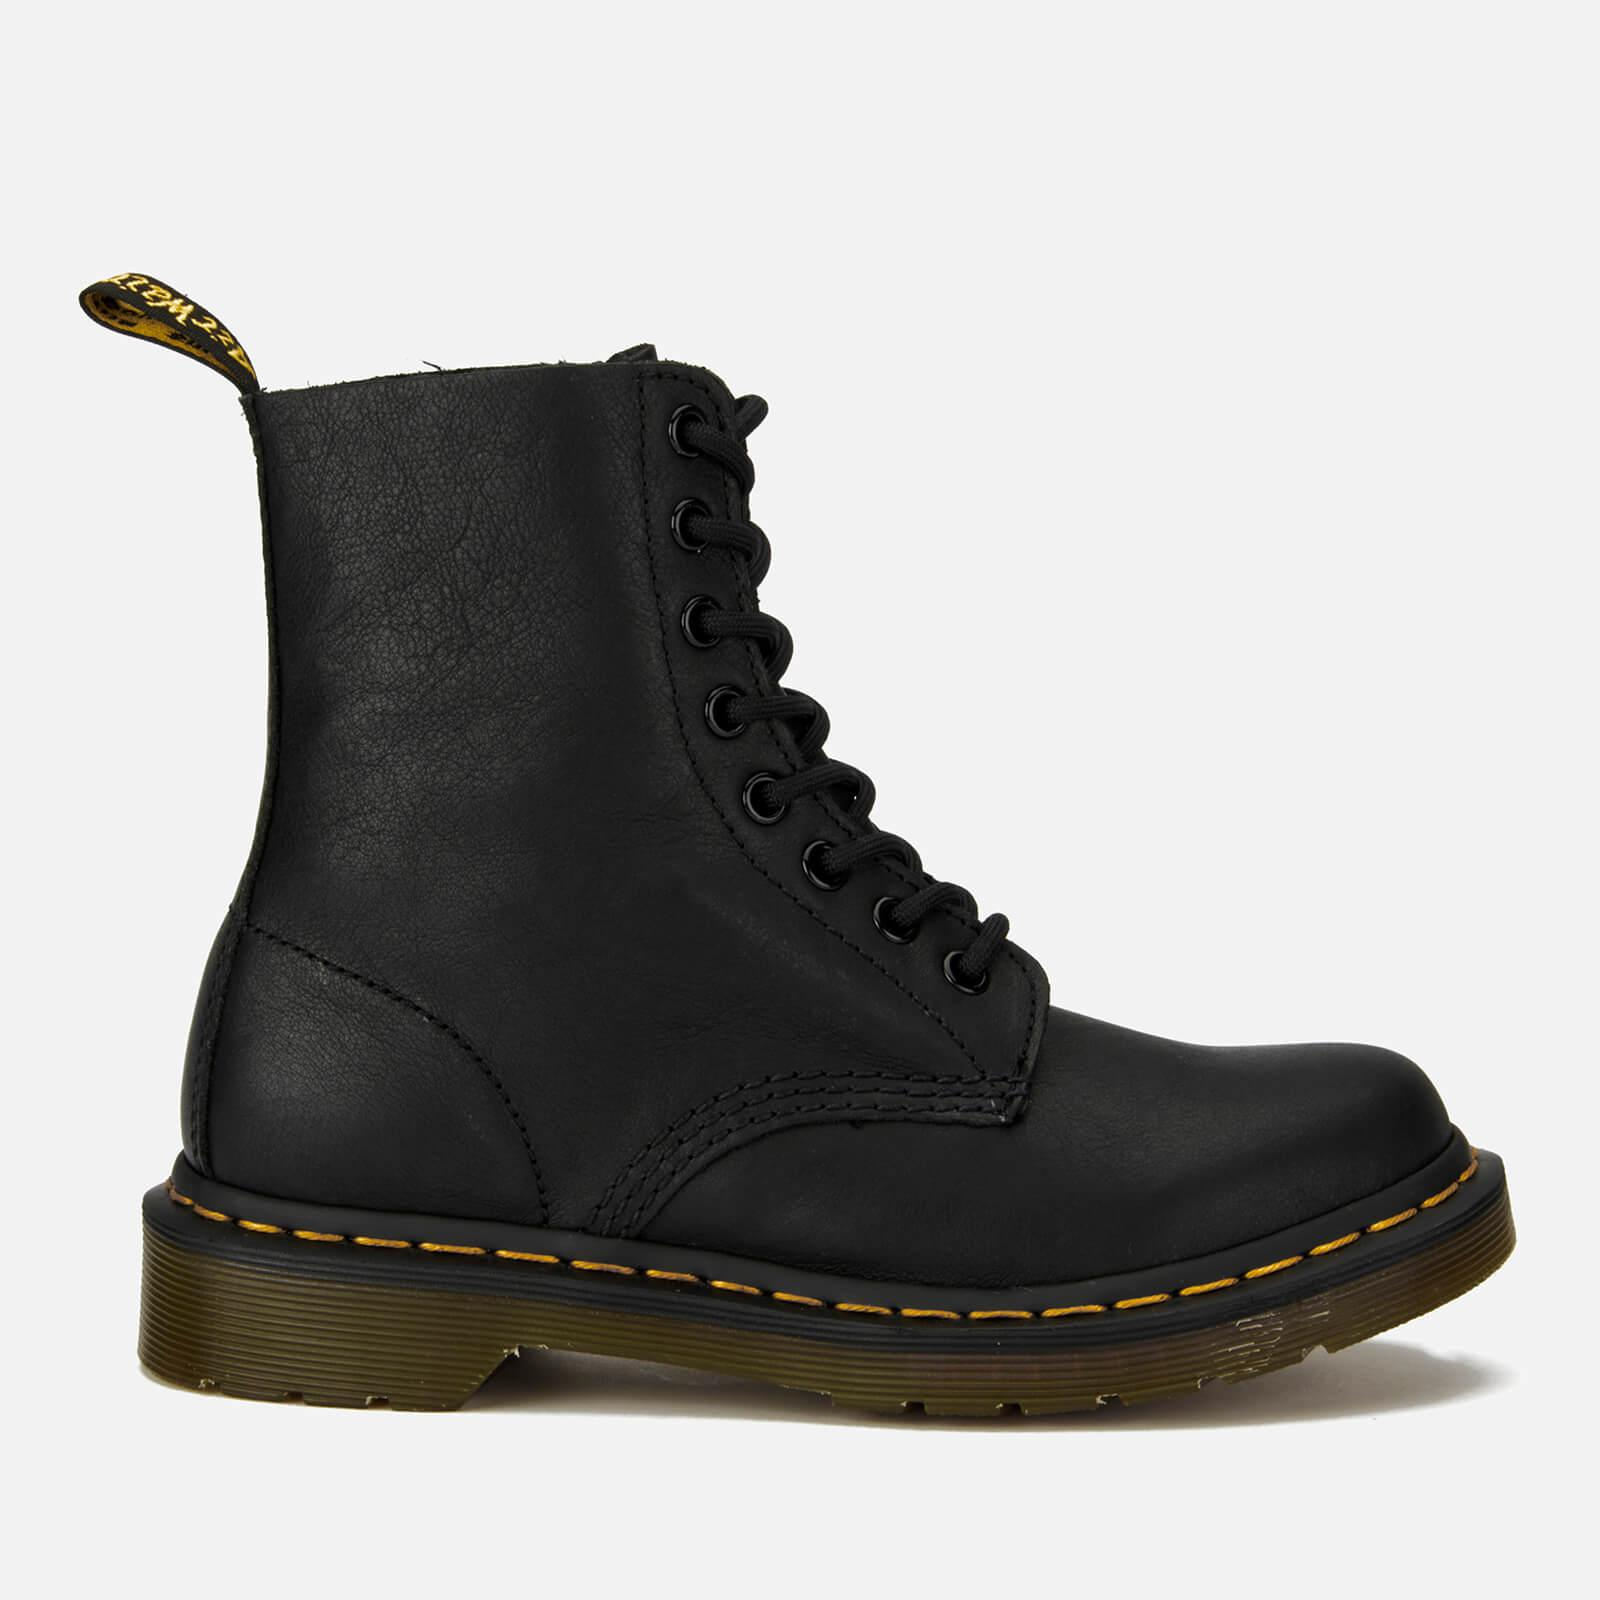 Dr. Martens 1460 PASCAL 8 EYE BOOT - Lace-up boots - dark brown virginia QKh6SpHmc